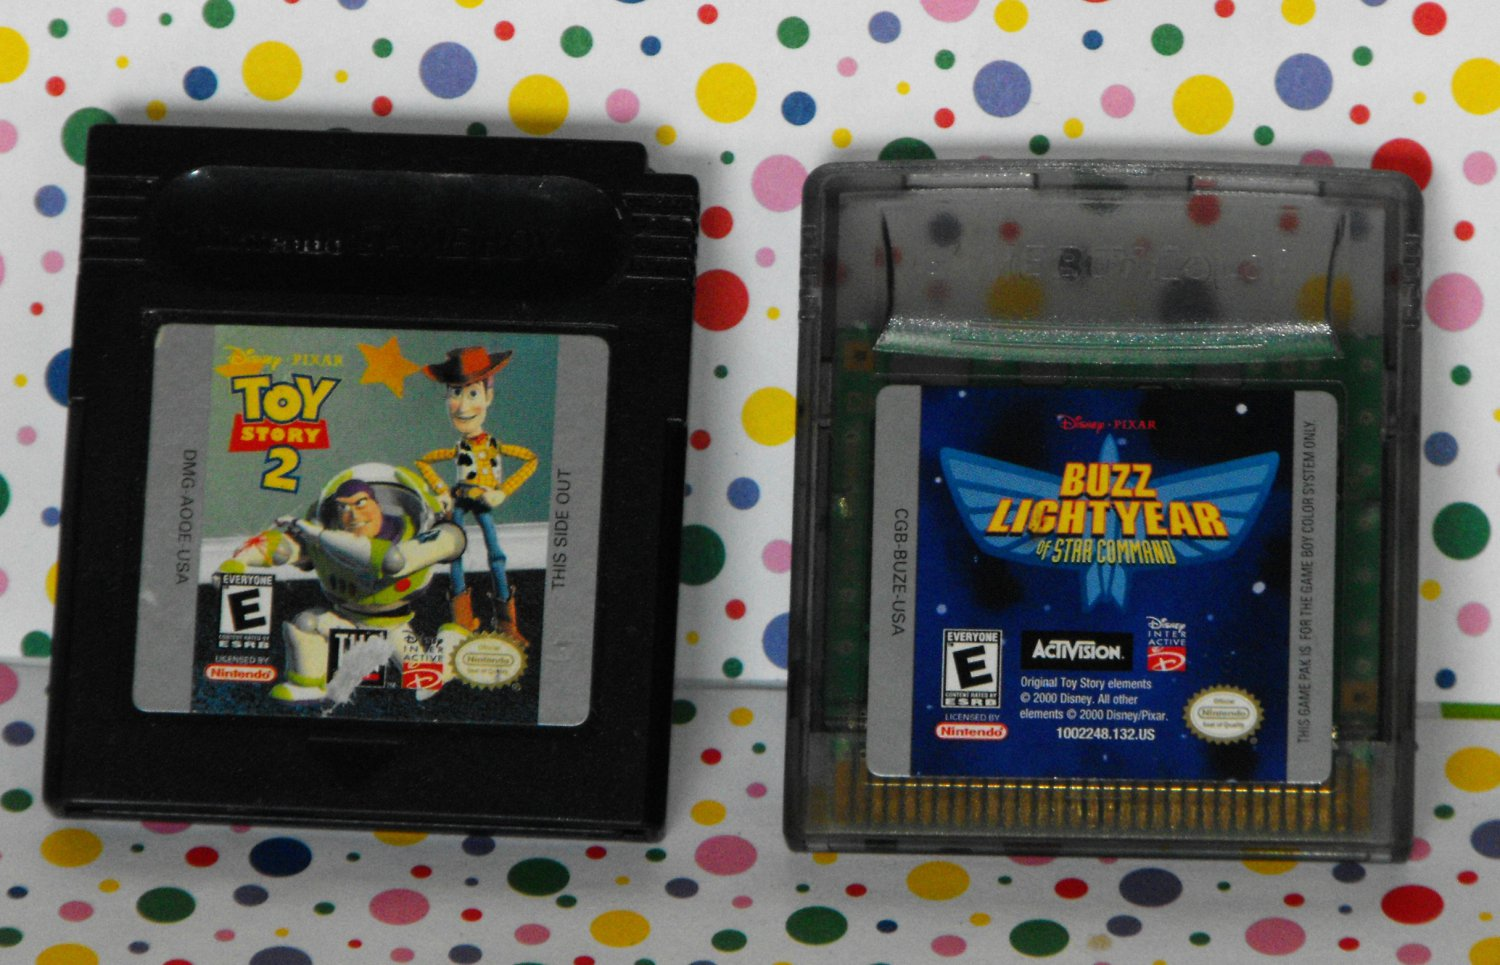 Disney's Toy Story 2 and Buzz Lightyear Game Boy Games Lot